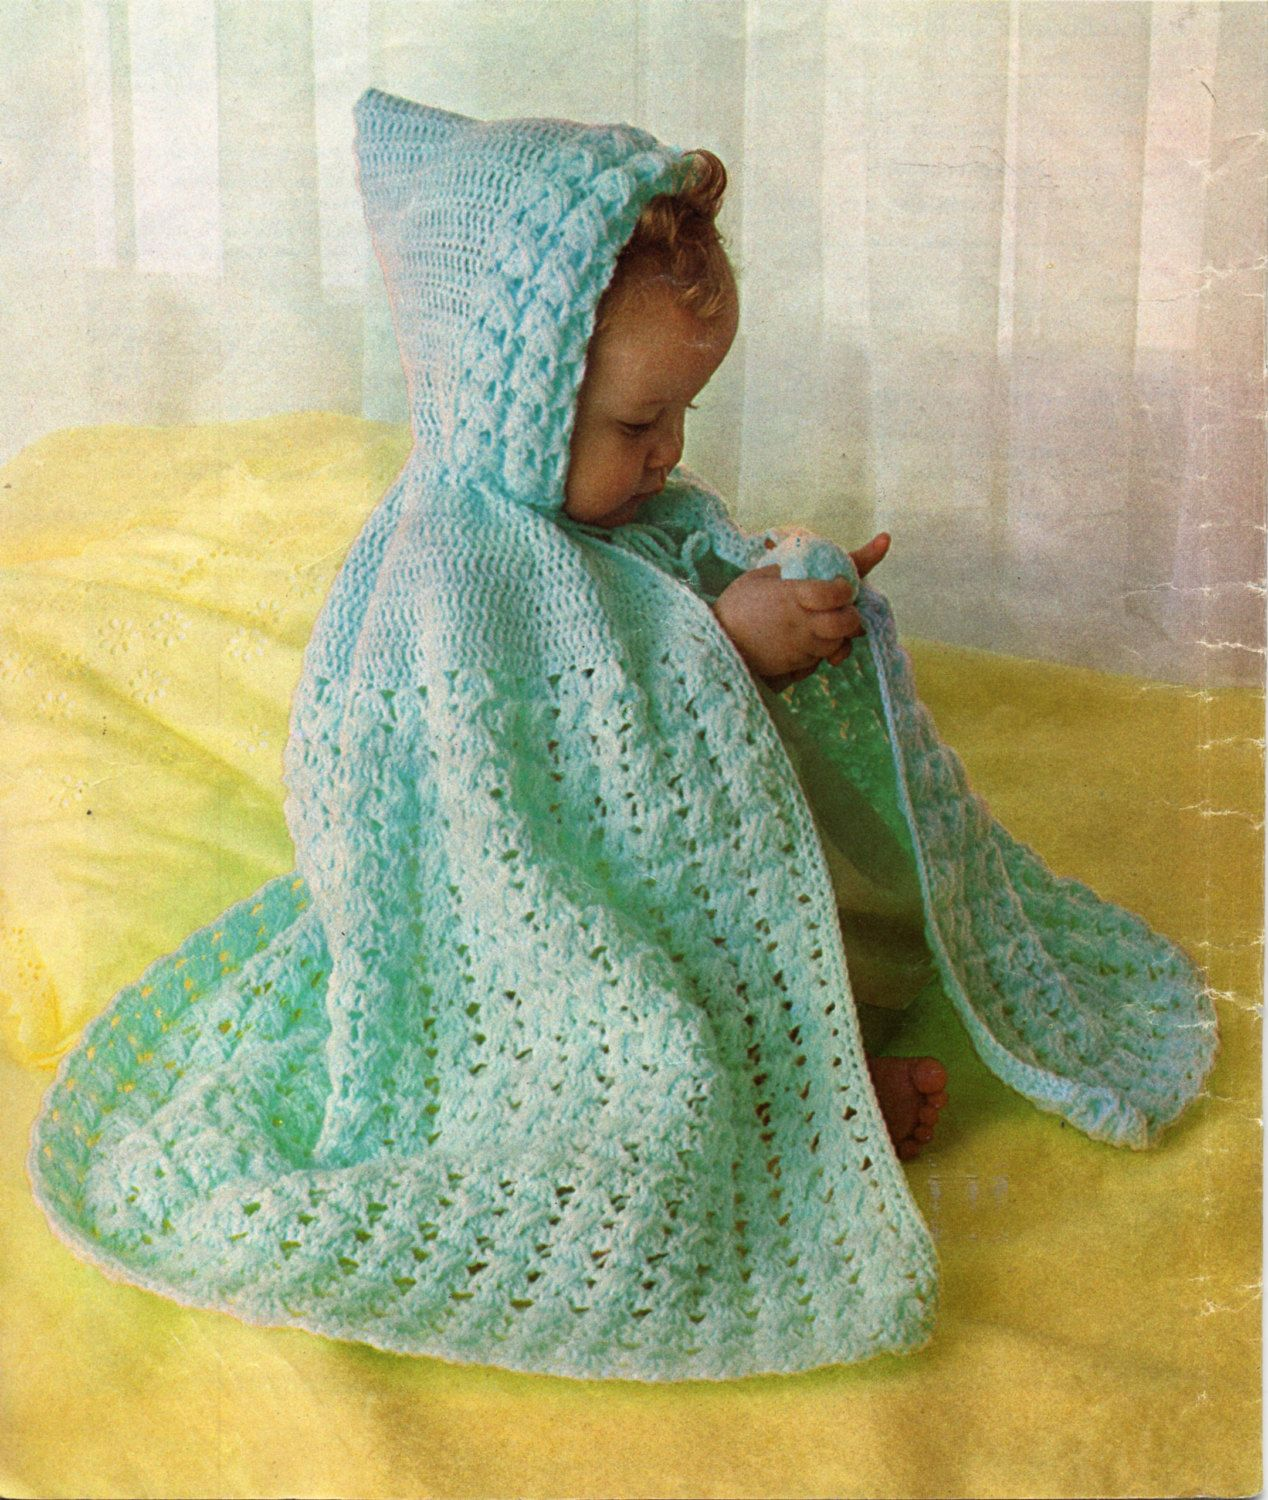 Baby crochet cape baby crochet pattern pdf download christening baby crochet cape baby crochet pattern pdf download christening cape crocheted lacy hooded cape carrying cape bankloansurffo Choice Image